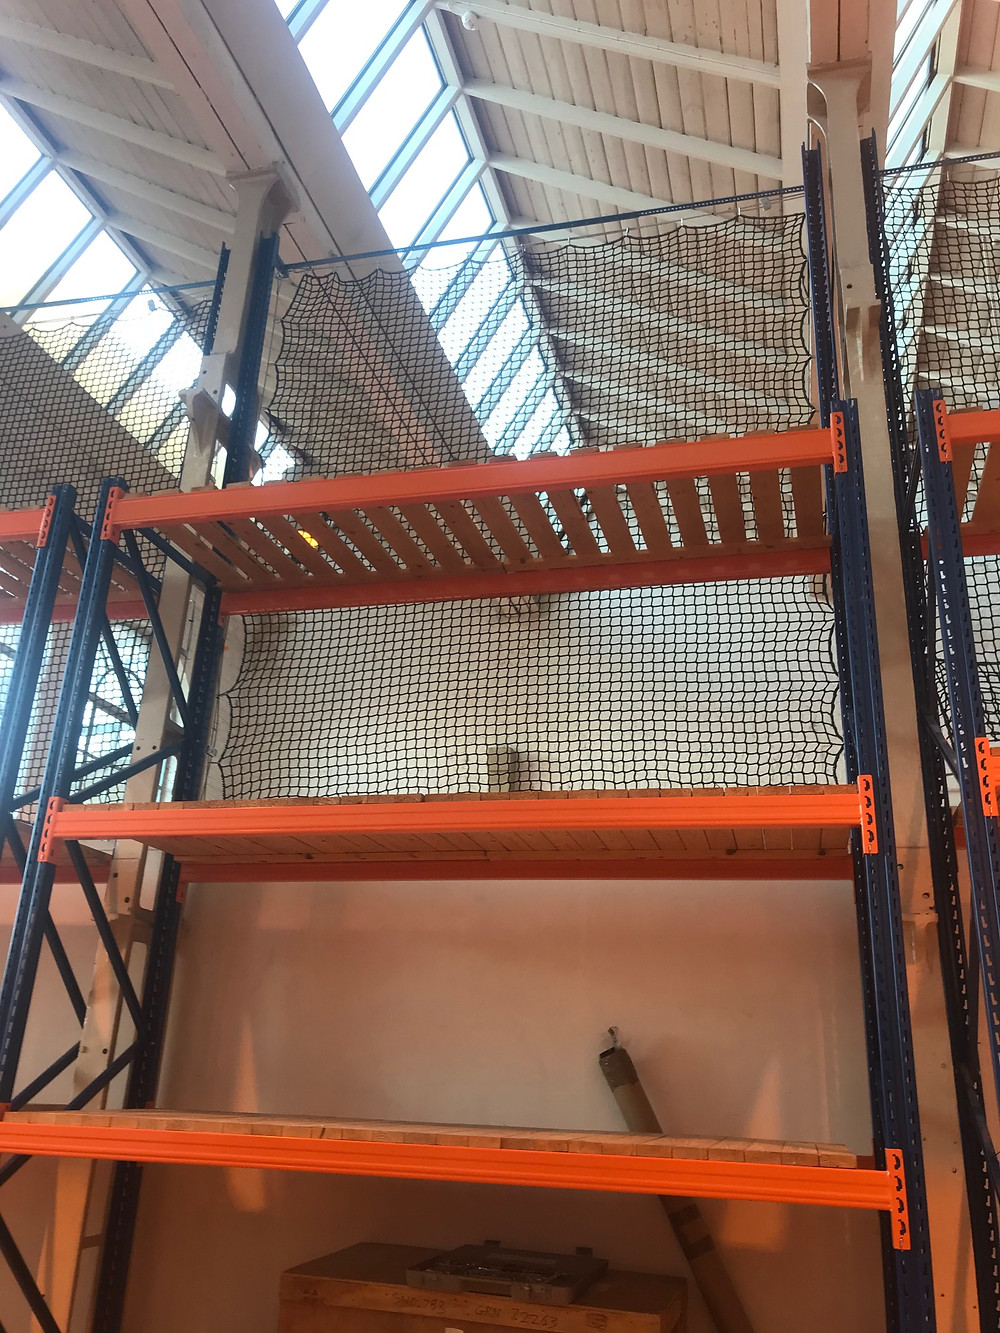 Pallet racking nets